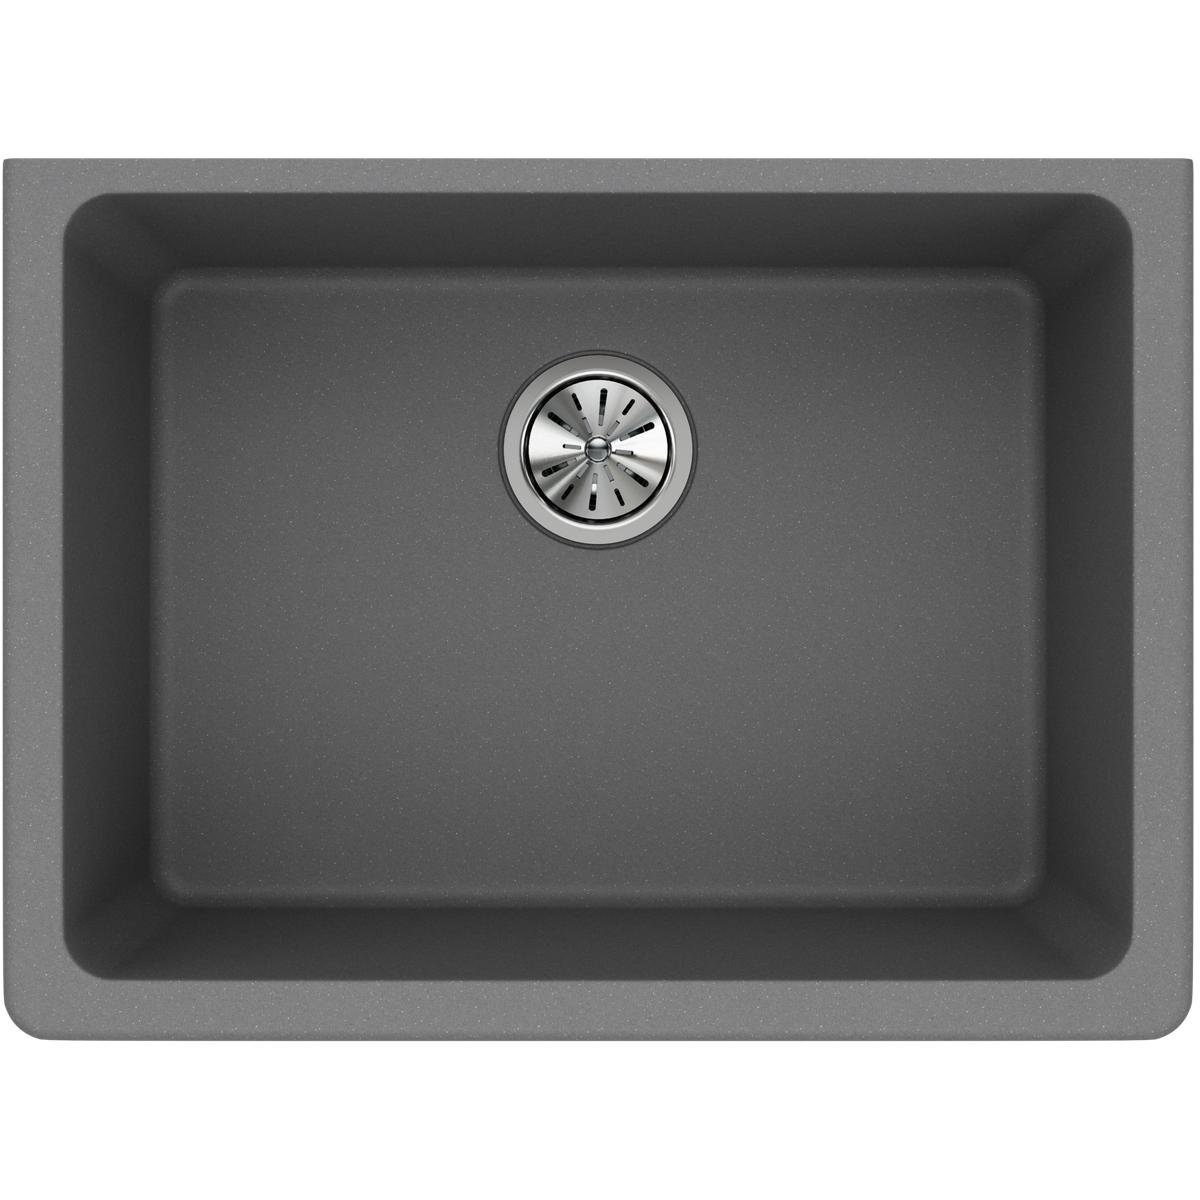 Elkay Quartz Classic ELGU2522GS0 Greystone Single Bowl Undermount Sink